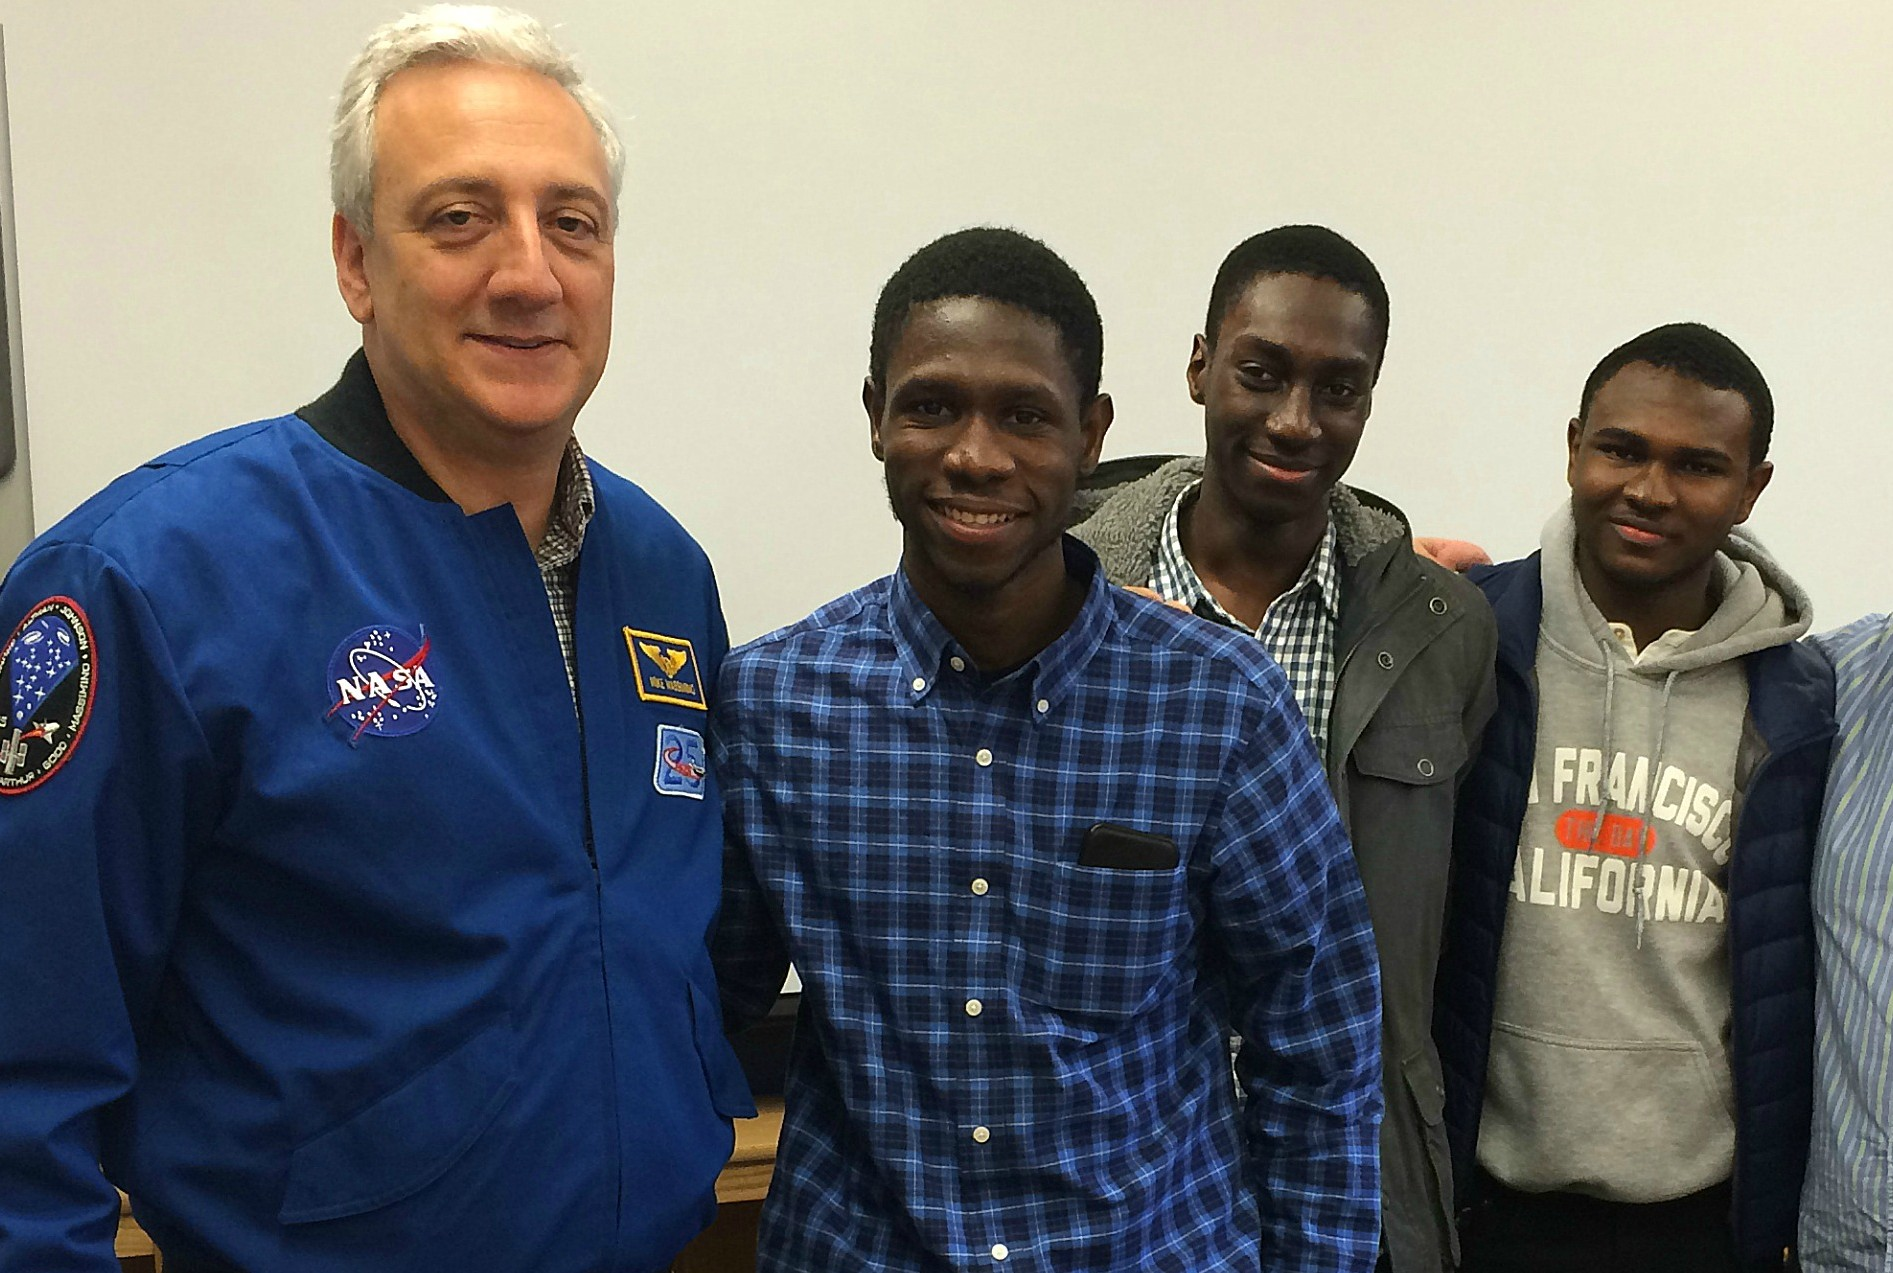 Professor and former NASA Astronaut Mike Massimino speaking with students from ELLIS Preparatory Academy.